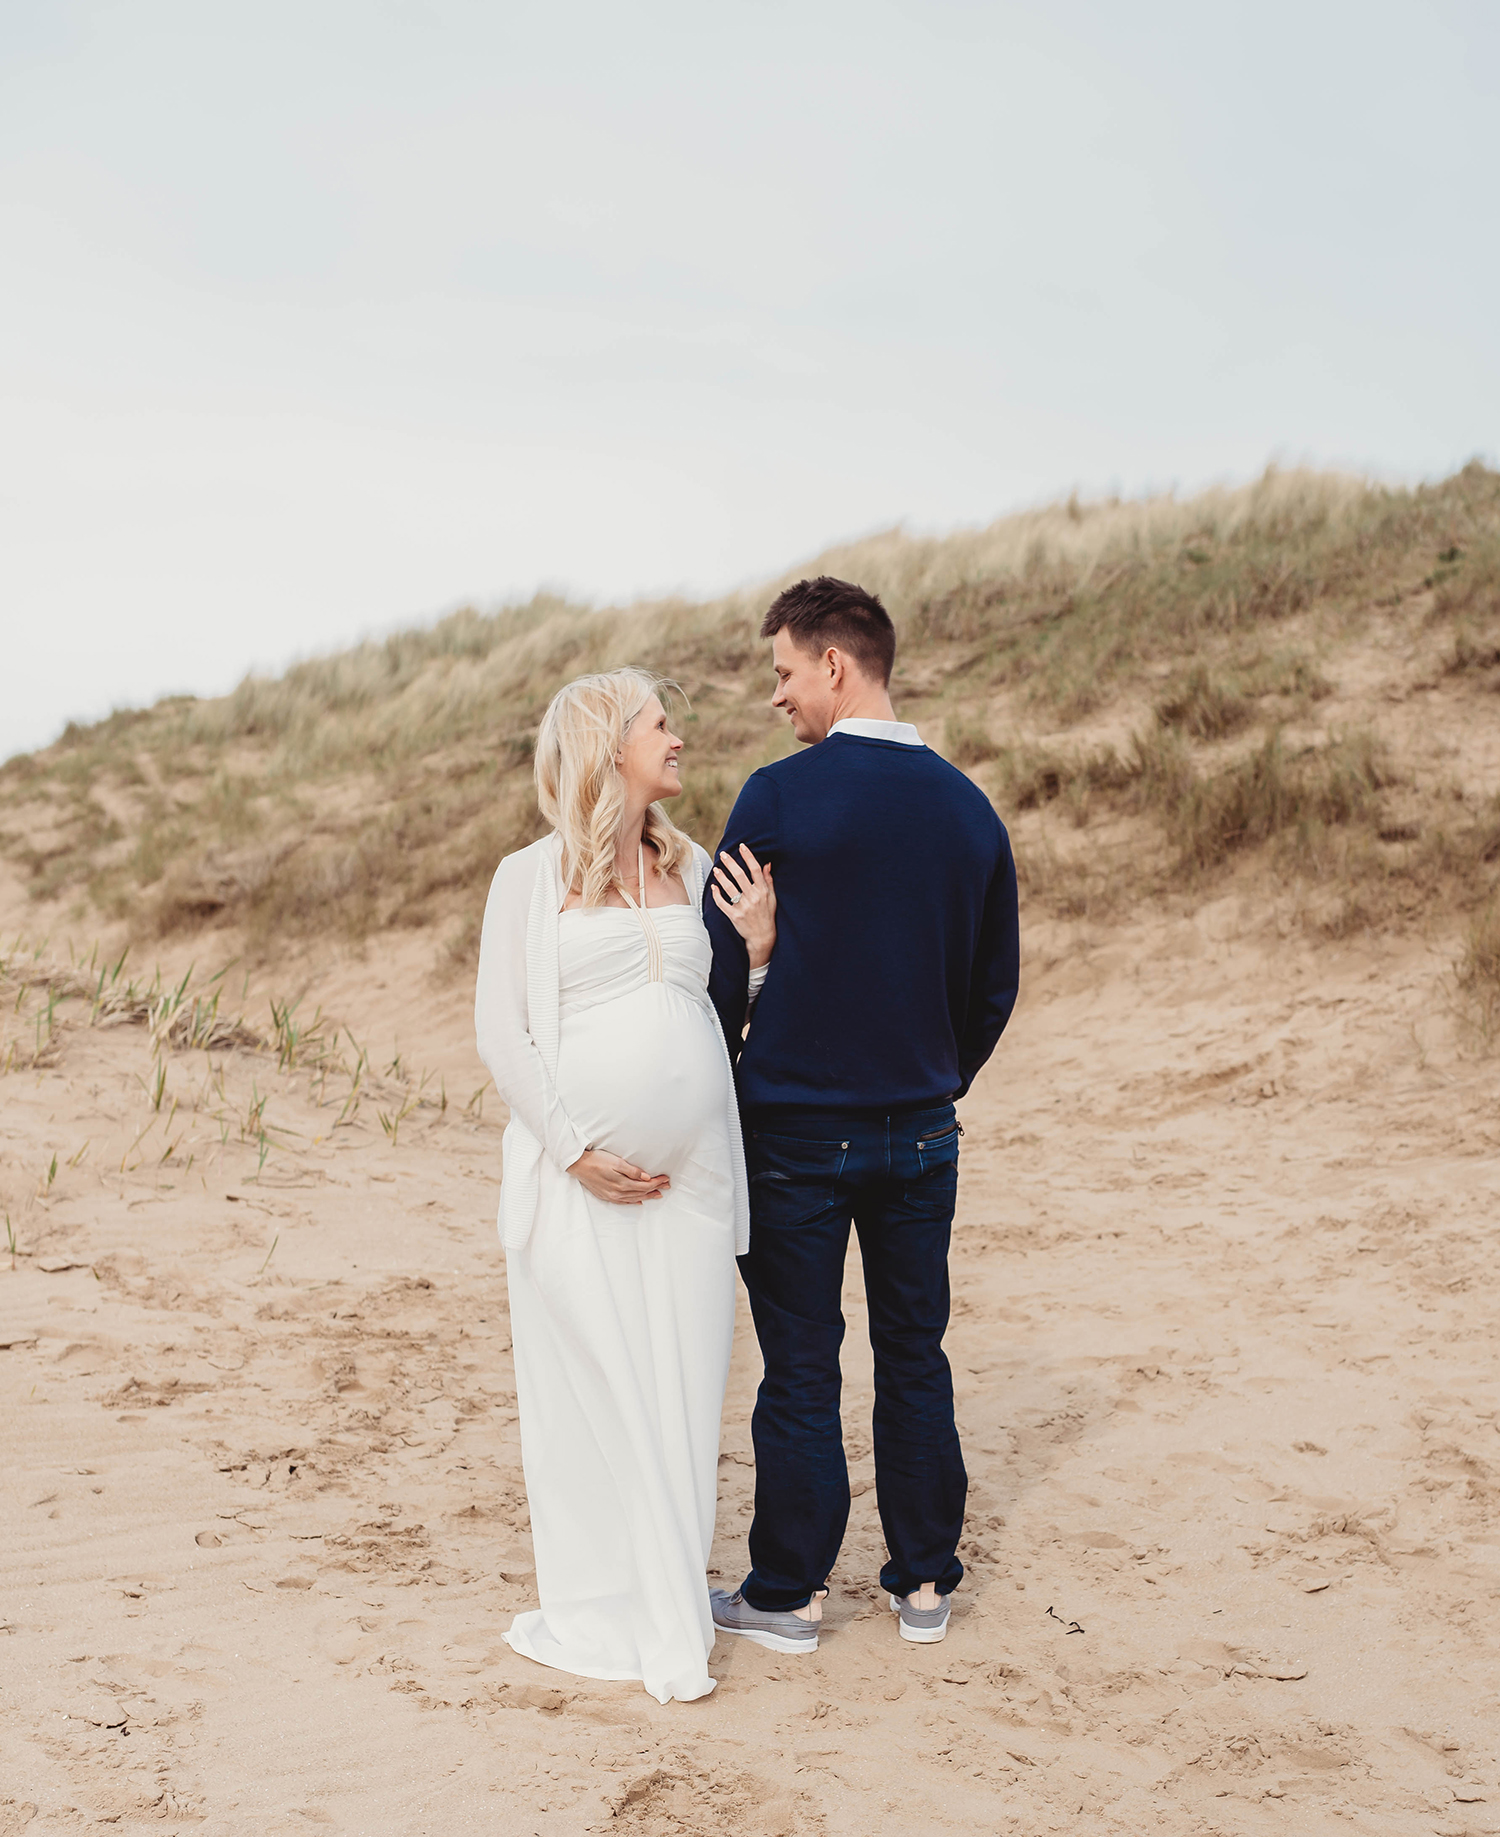 Maternity Photoshoot on the beach third pregnancy 32 weeks pregnant Robyn Swain Photography